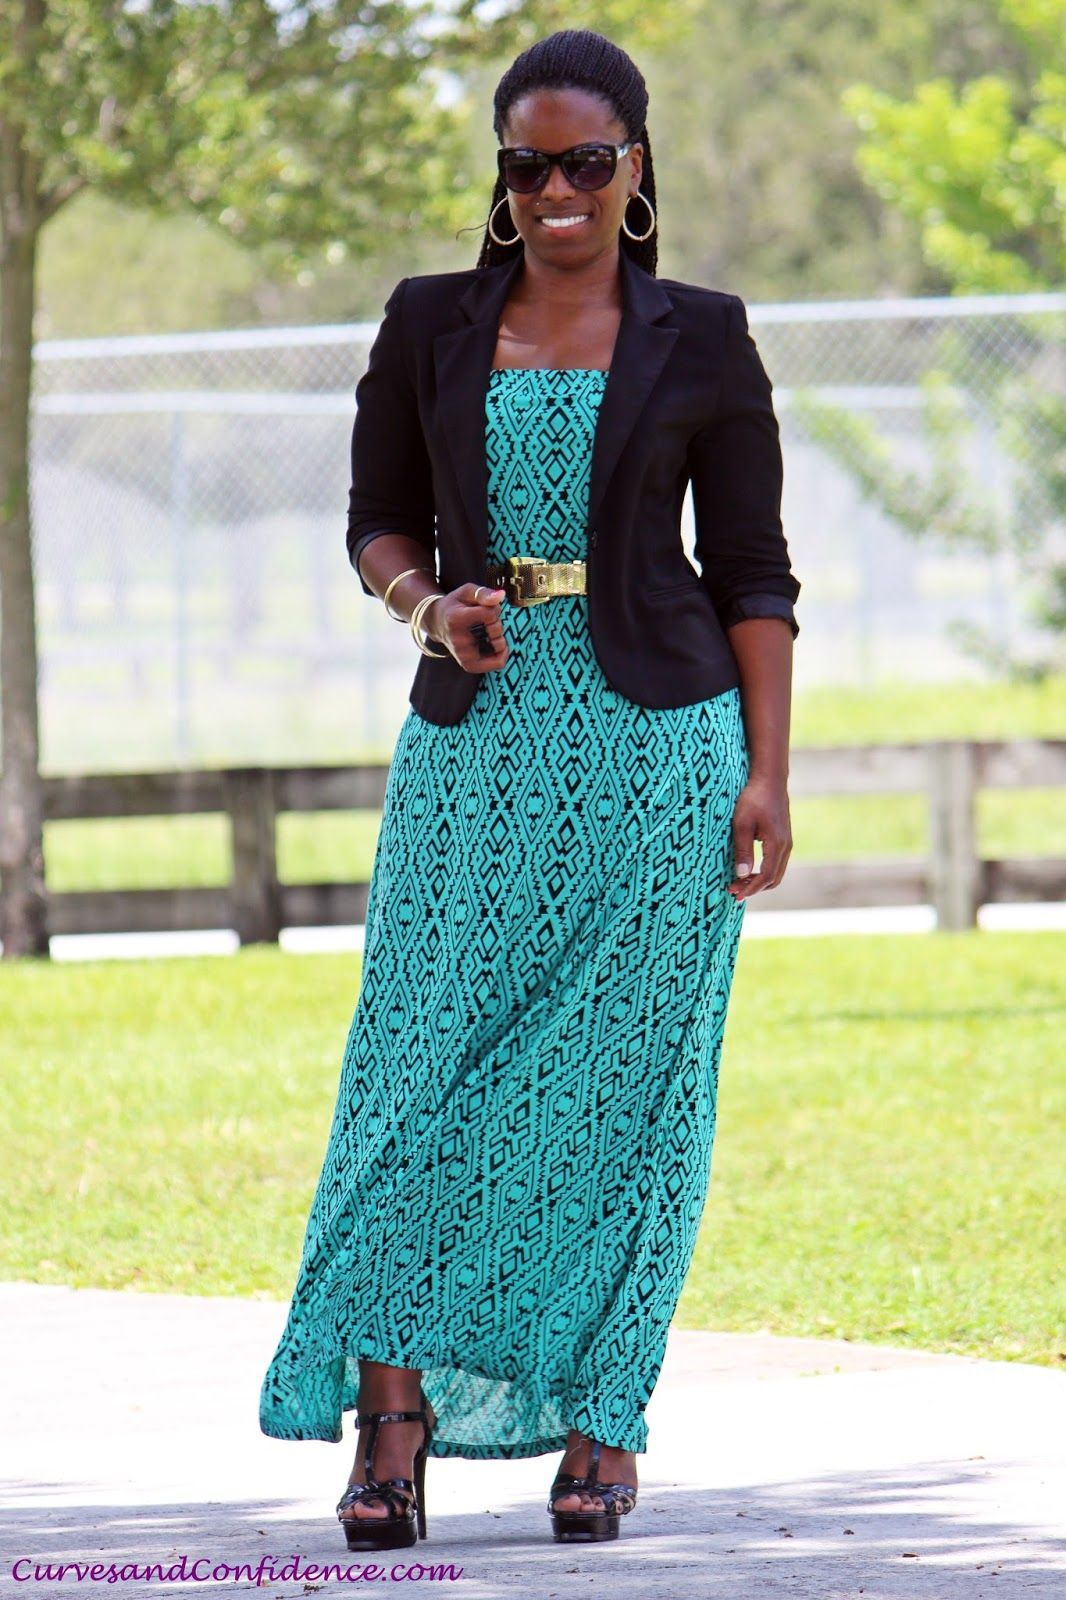 maxi dress and blazer outfit what to wear to work summer work pop